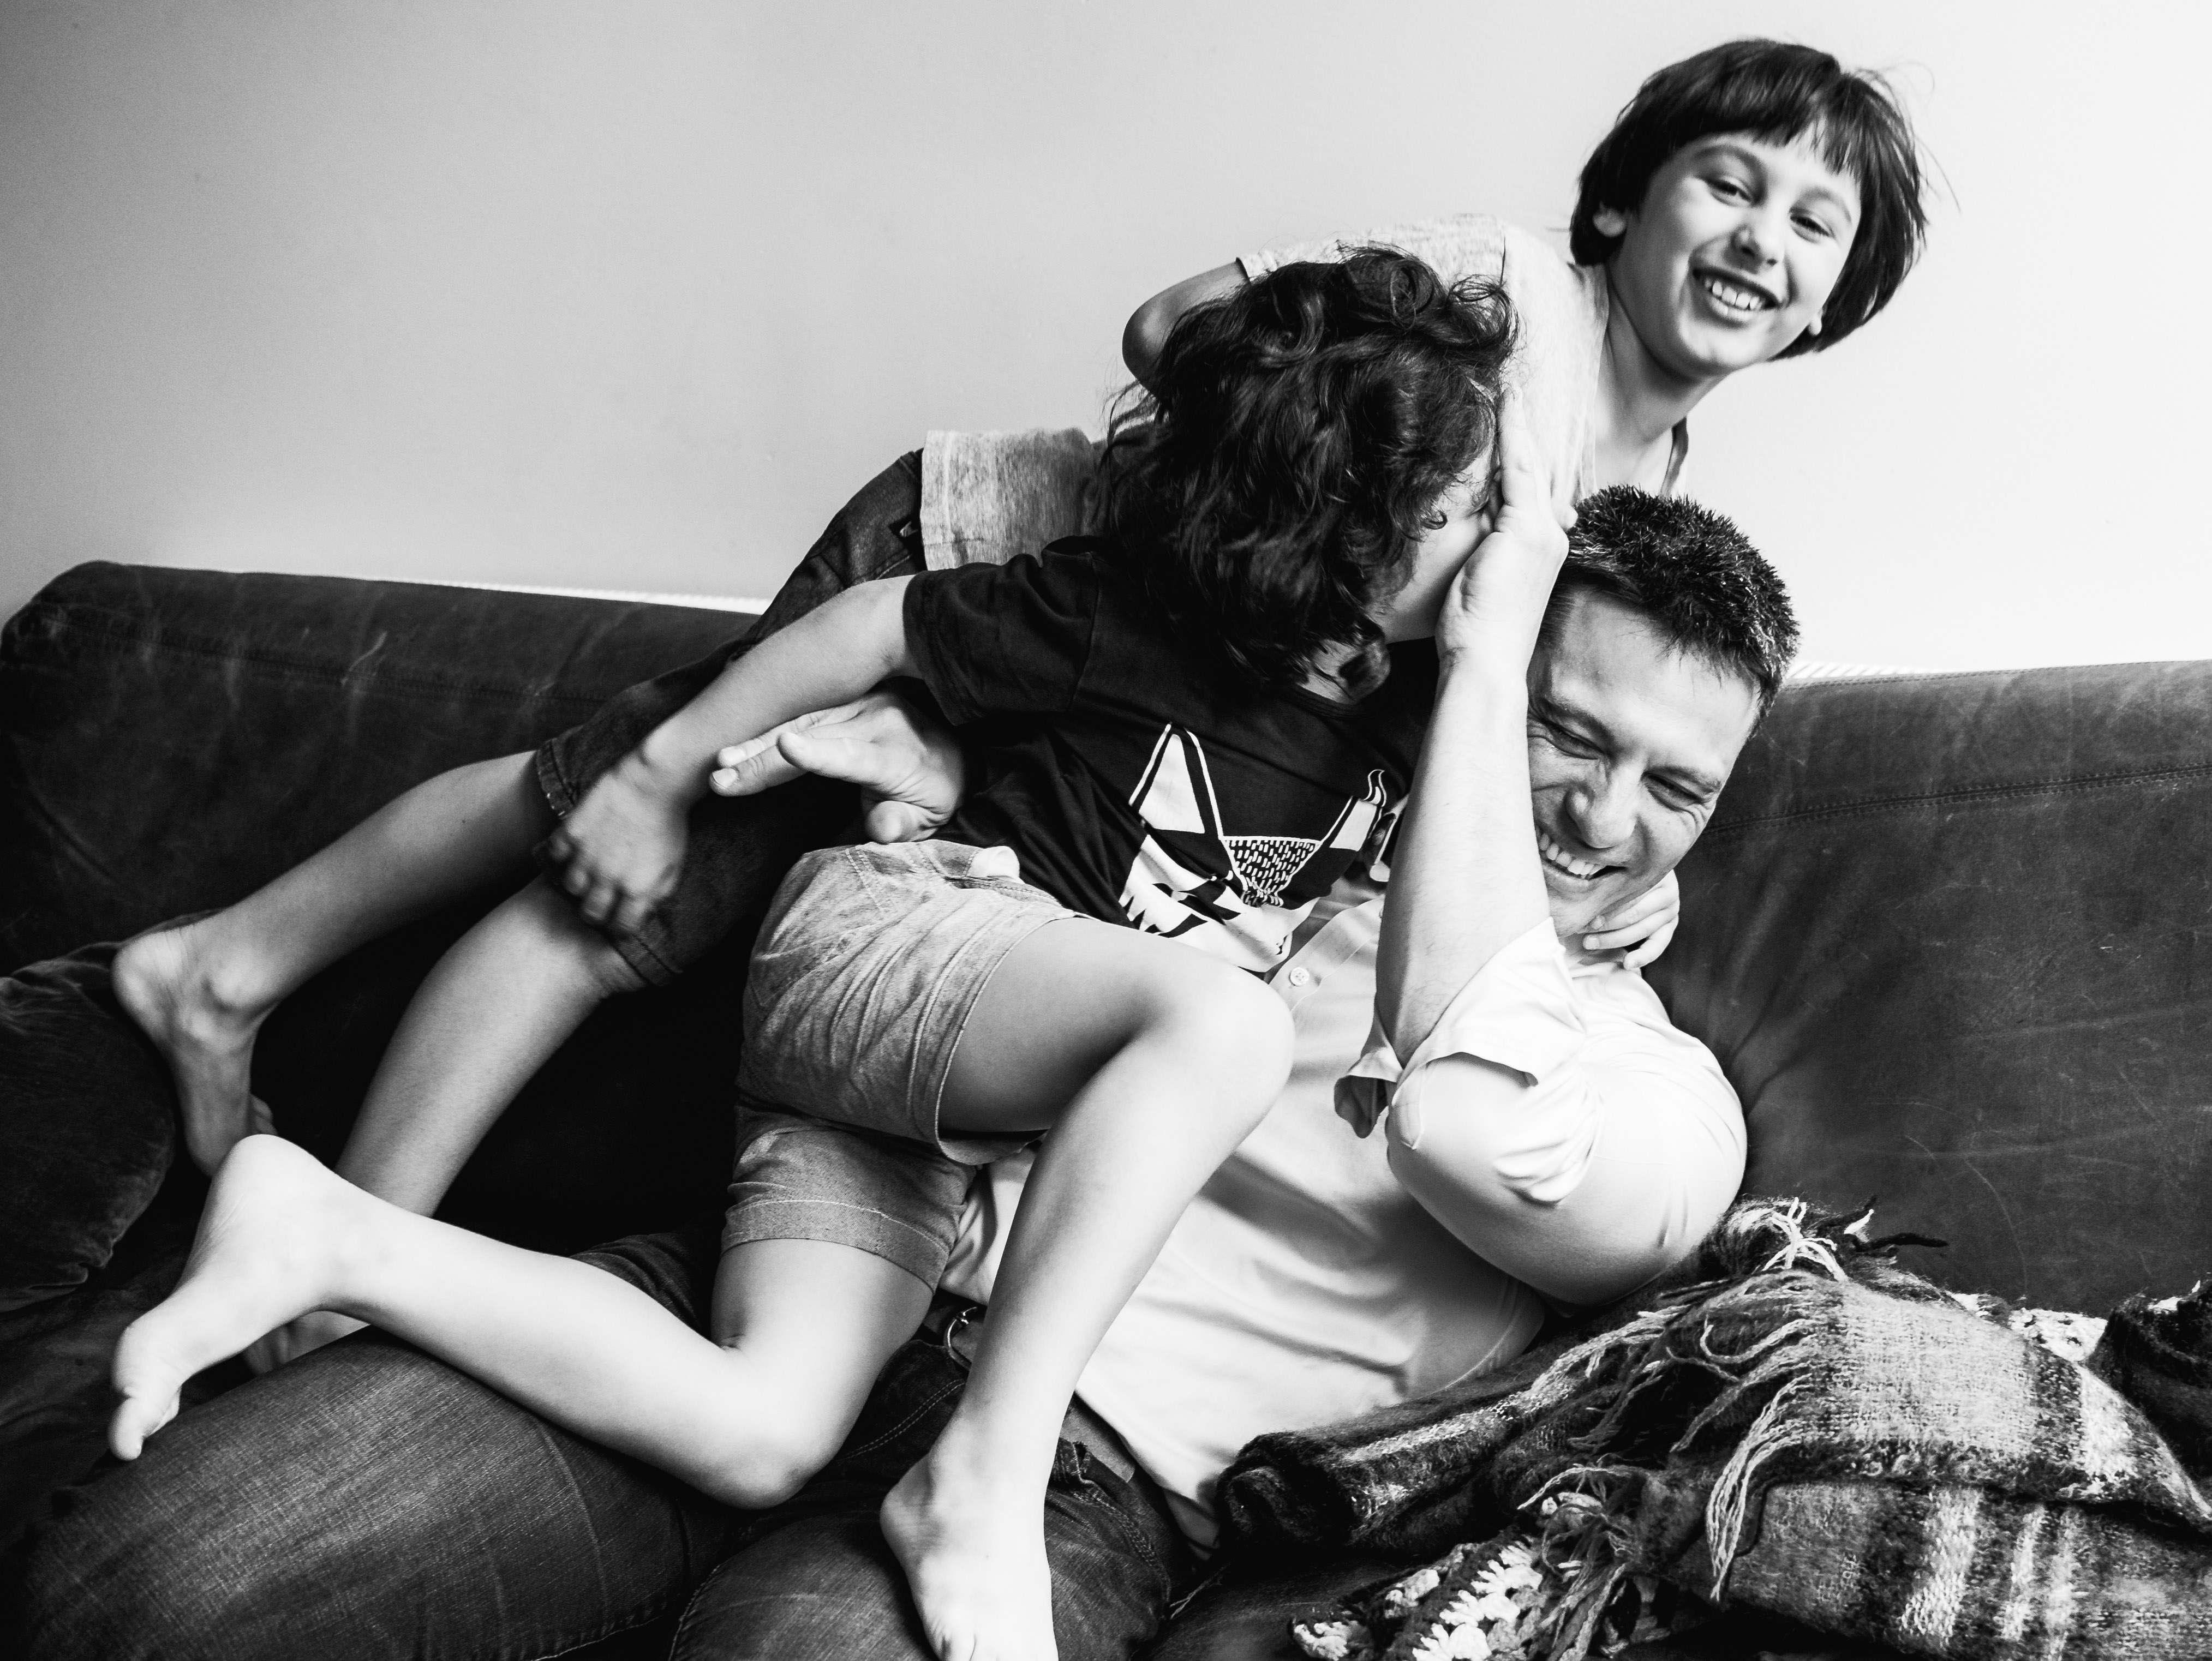 photograph of boys wrestling their father on a couch/sofa in Carlton North, Melbourne, Australia